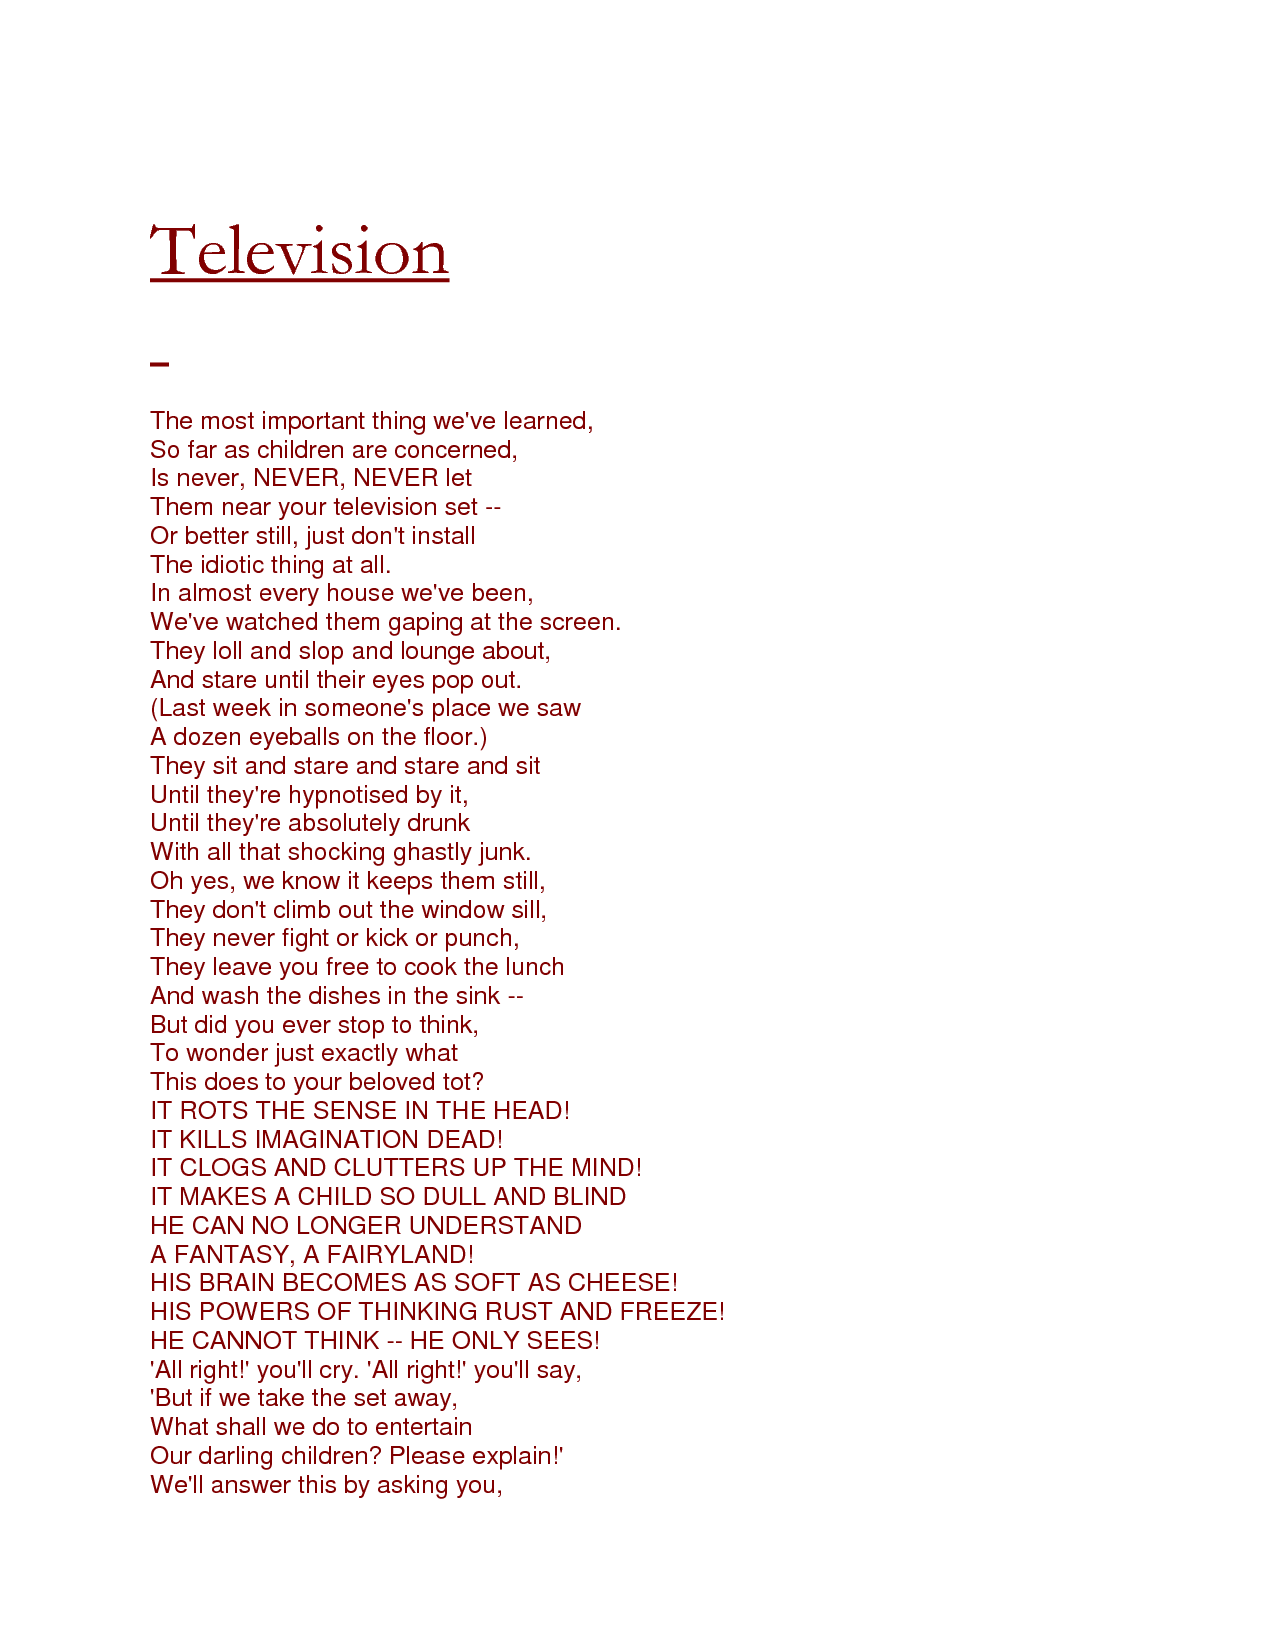 Poems By Roald Dahl Television